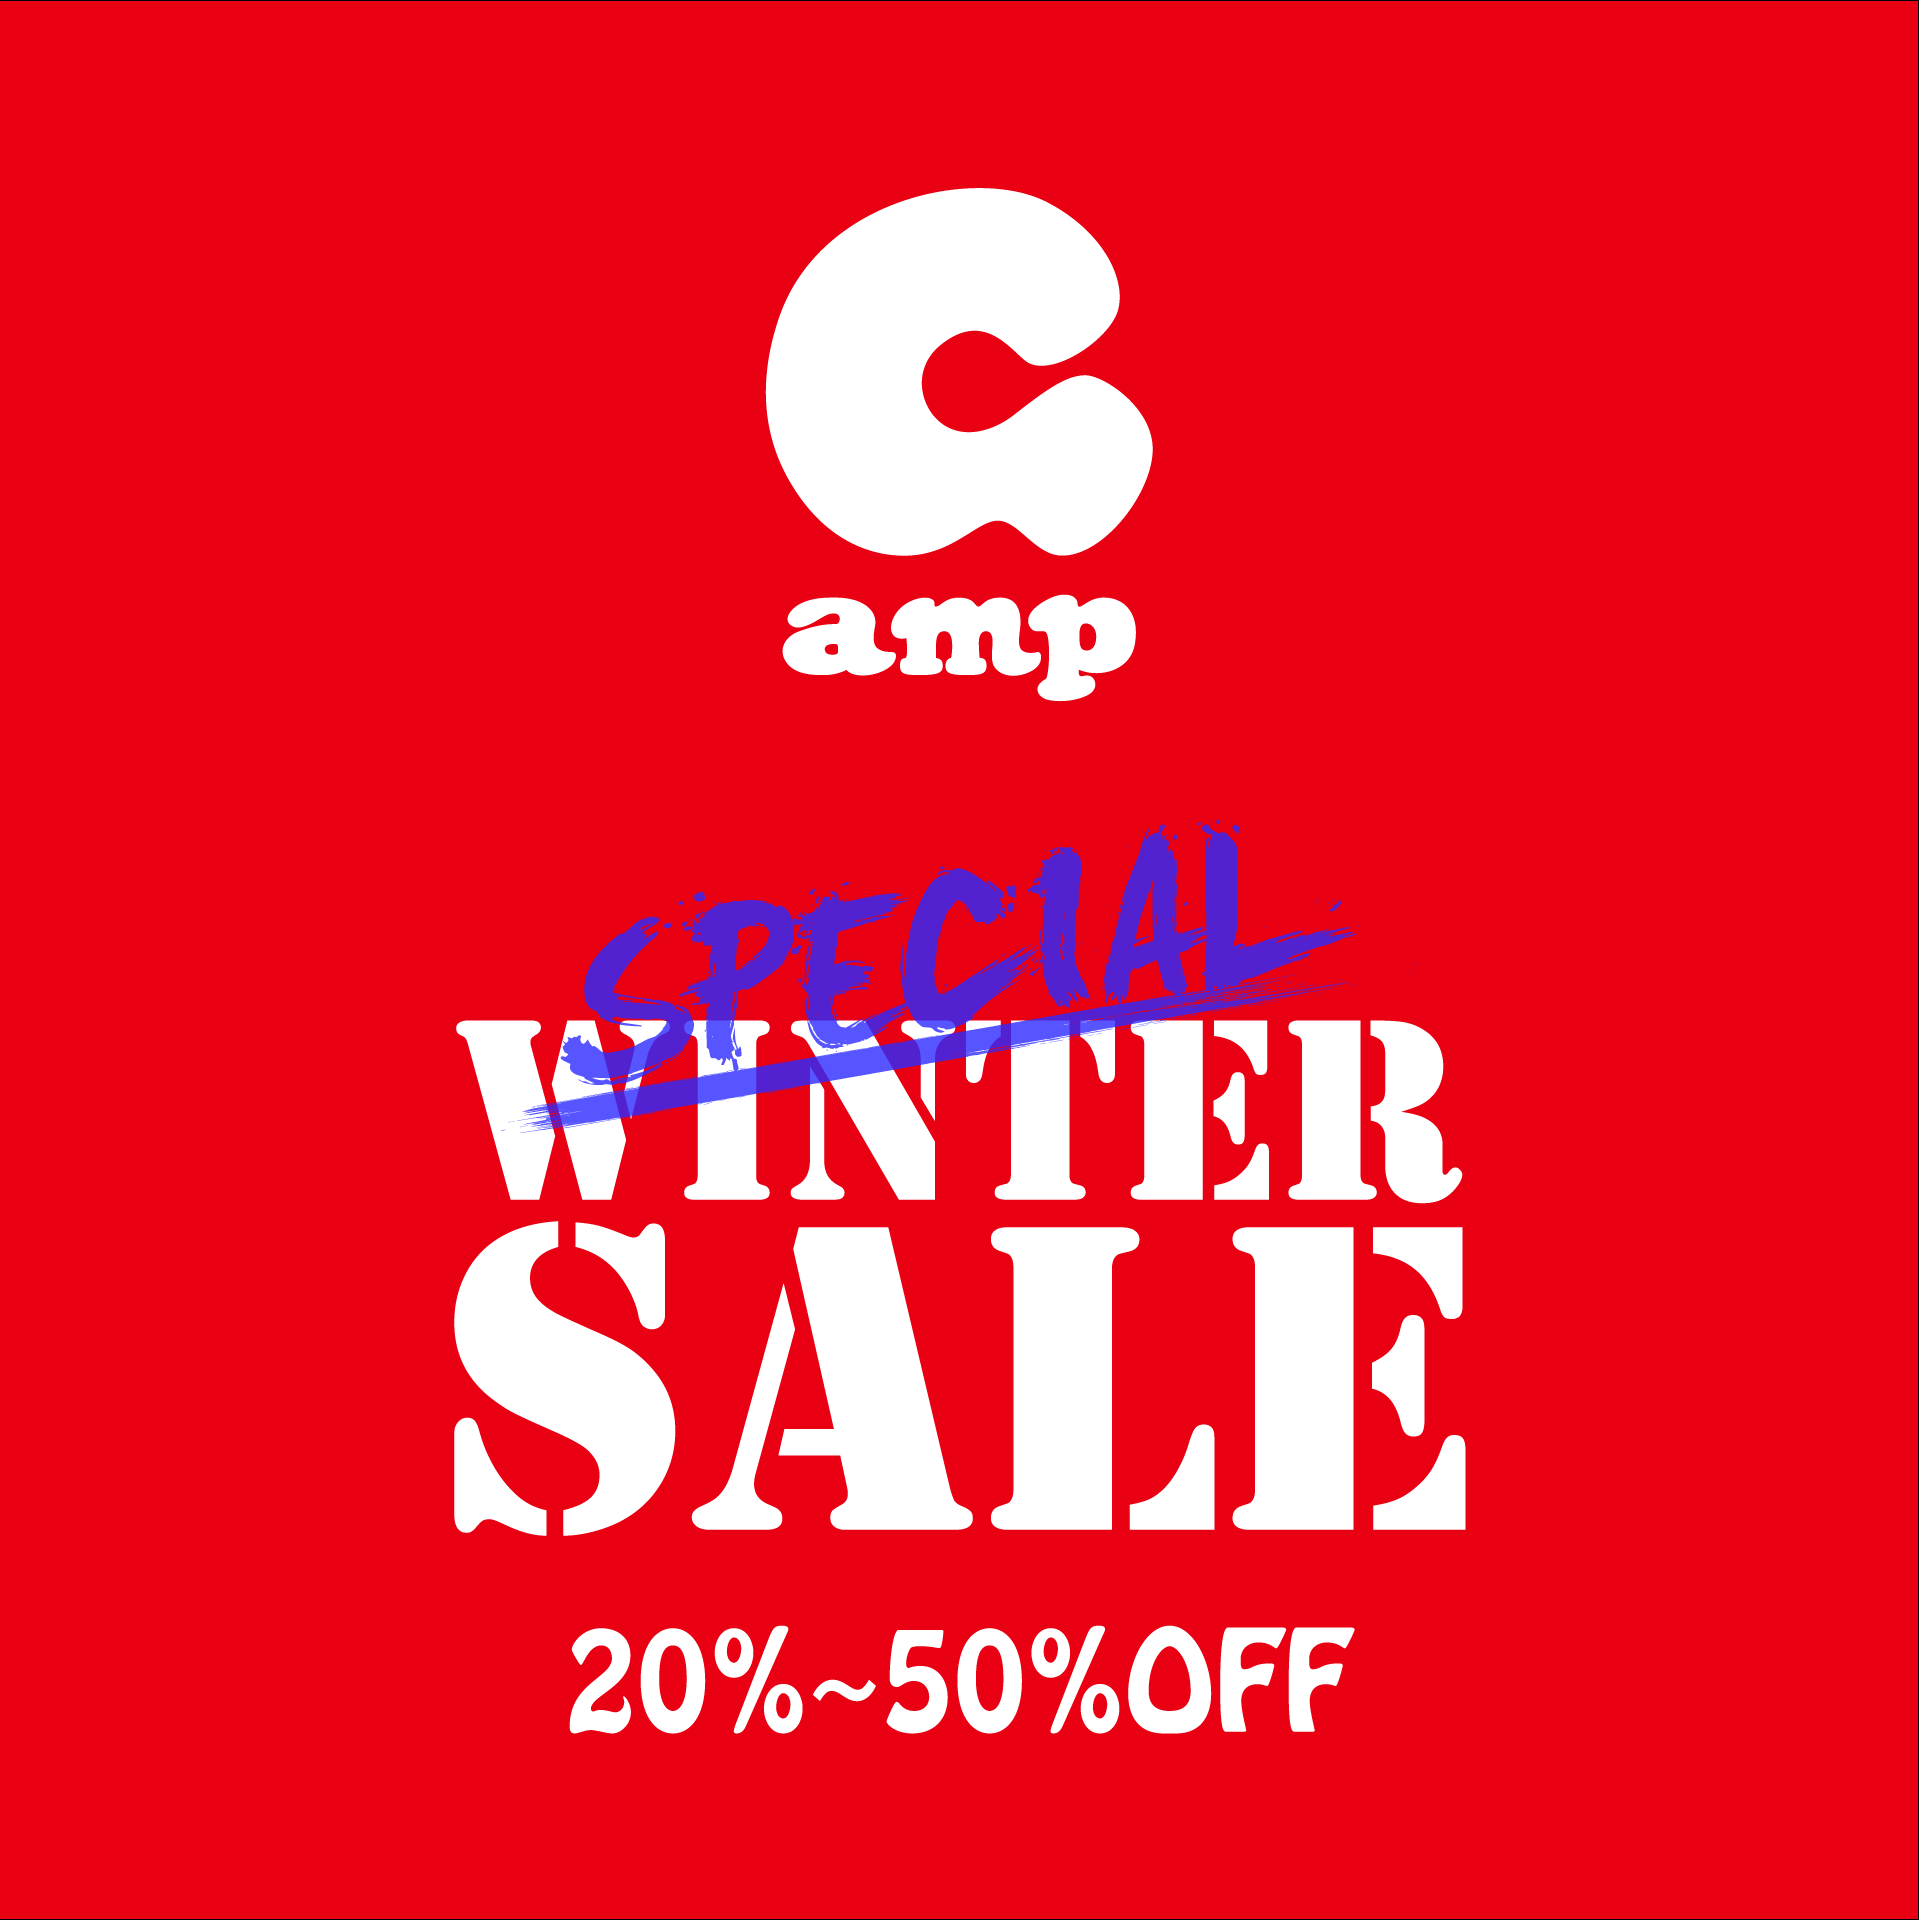 SPECIAL WINTER SALE_d0126729_21331780.png